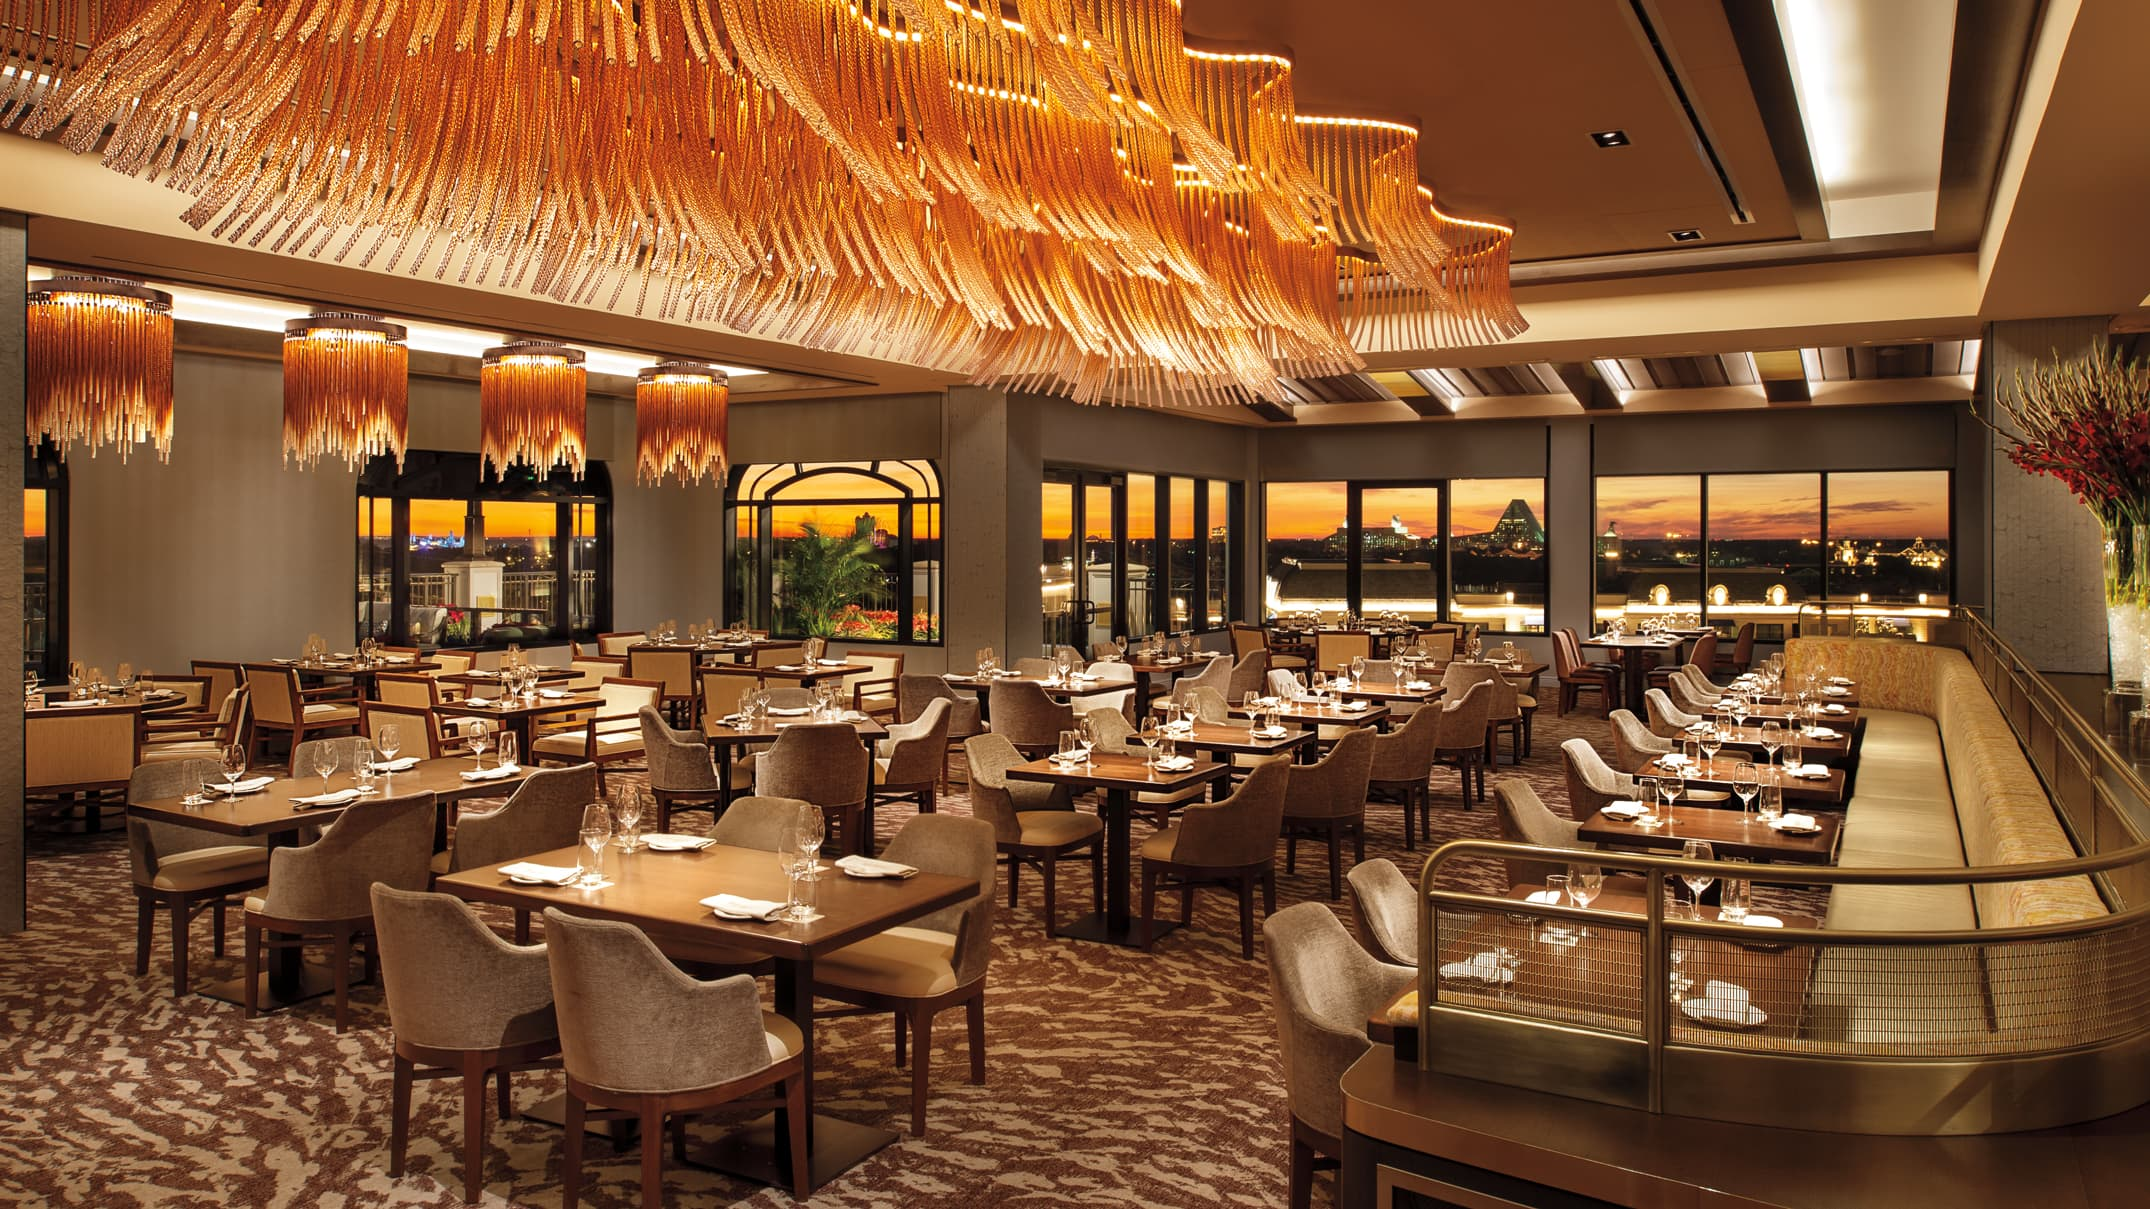 The dining room at Topolino's Terrace – Flavors of the Riviera restaurant